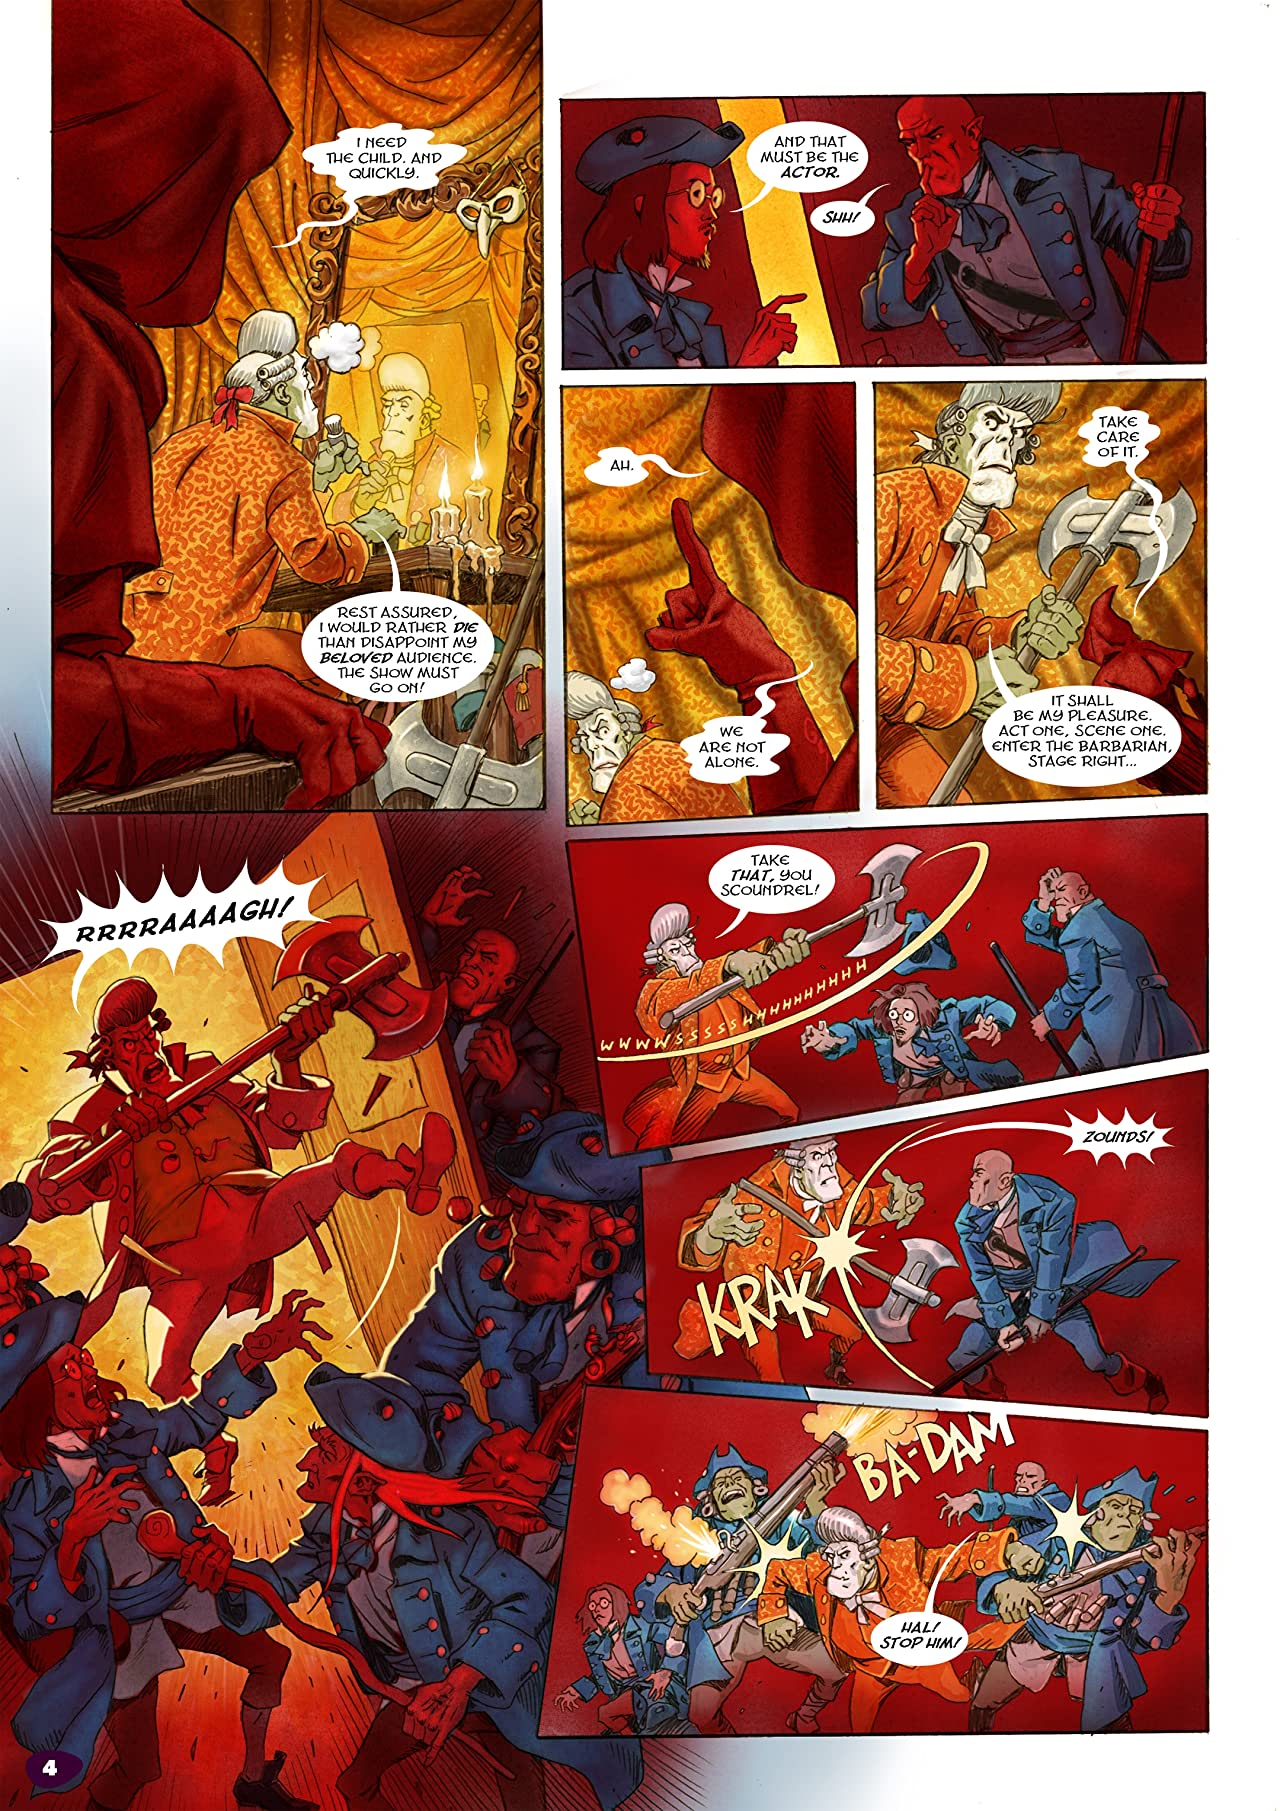 The Phoenix #131: The Weekly Story Comic